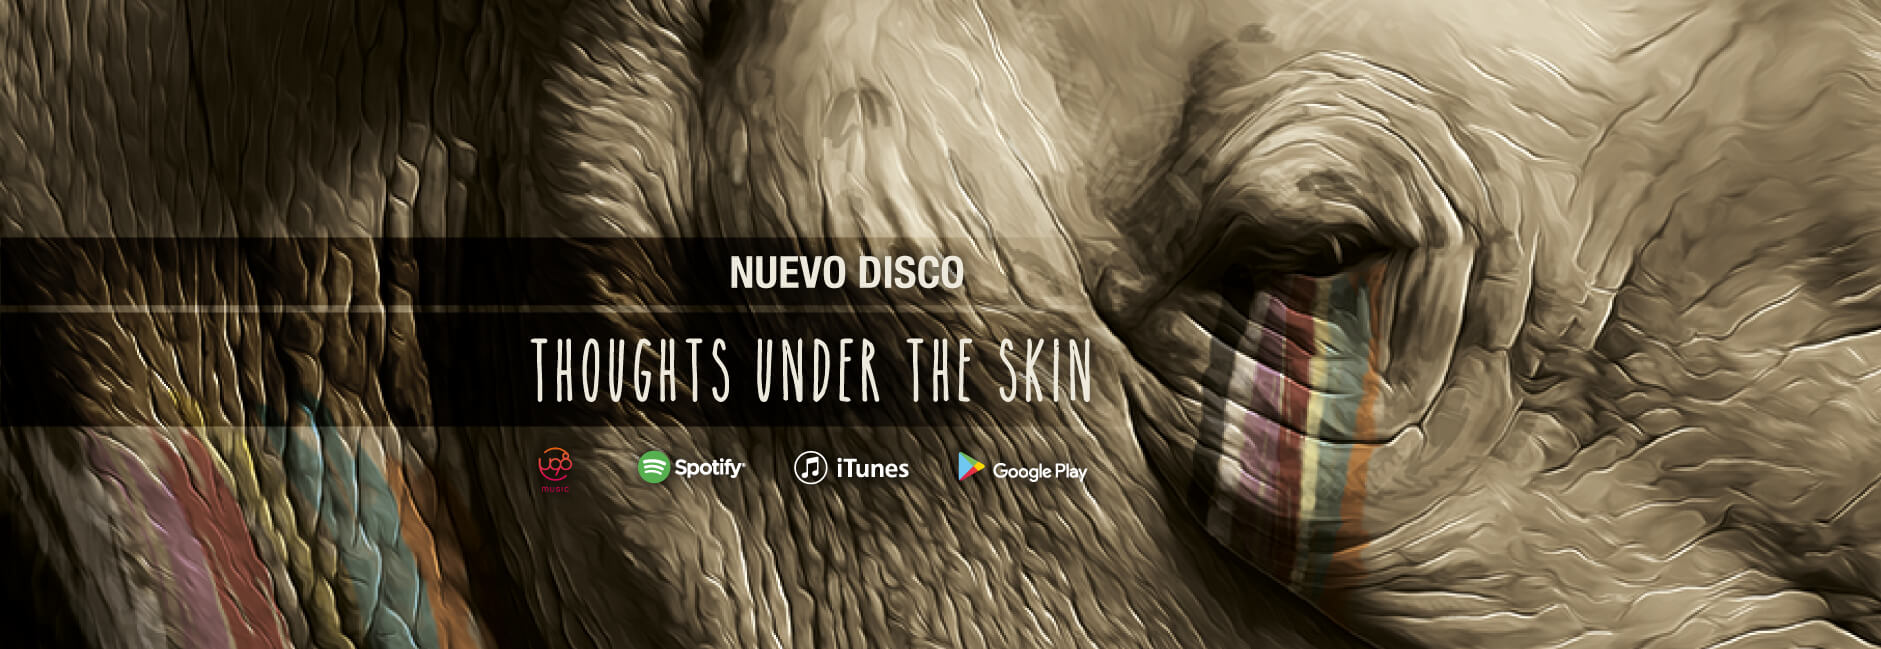 Nou disc Thoughts Under The Skin